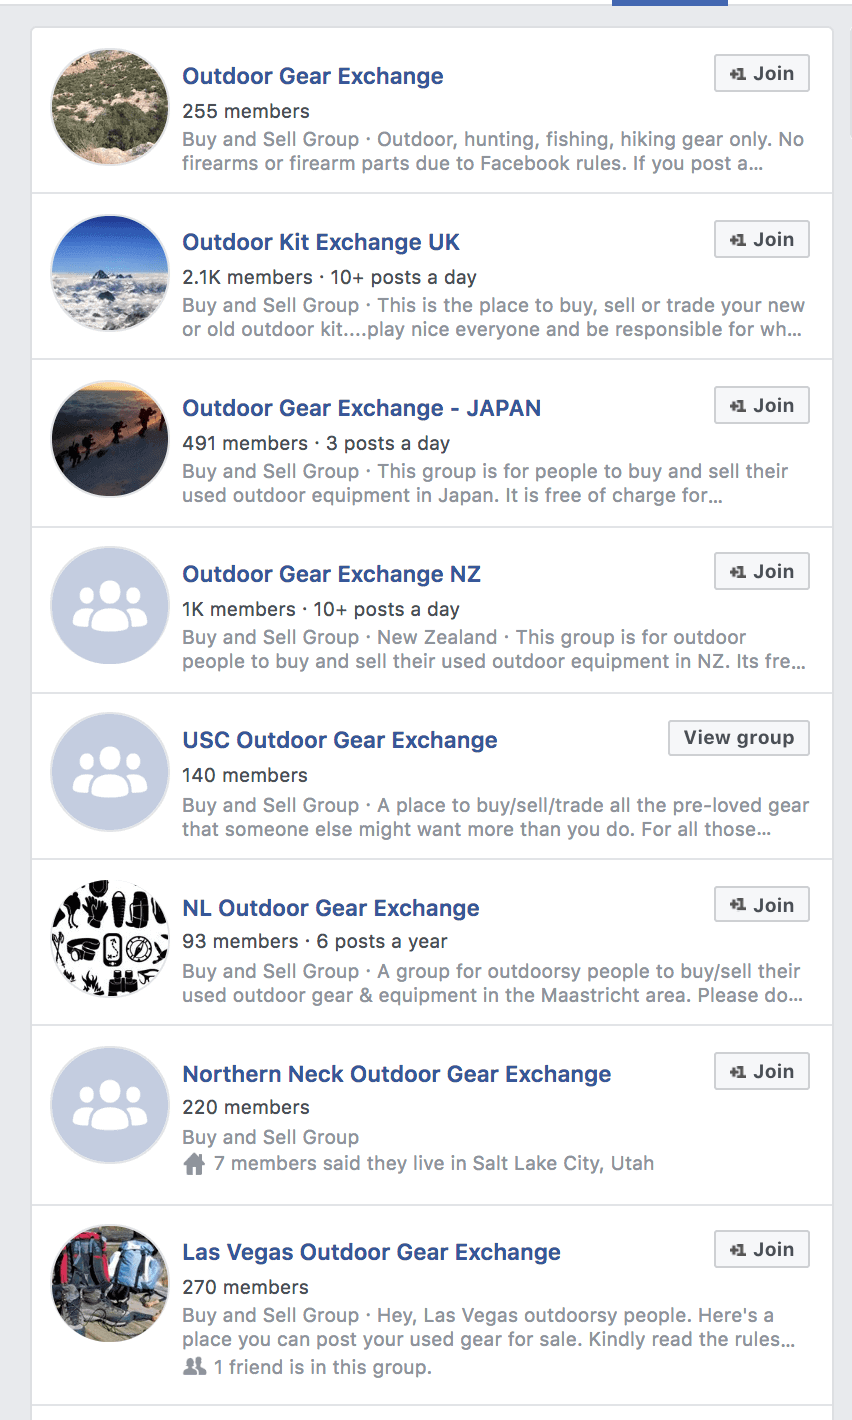 Facebook groups can be a handy place to find discounted outdoor gear online